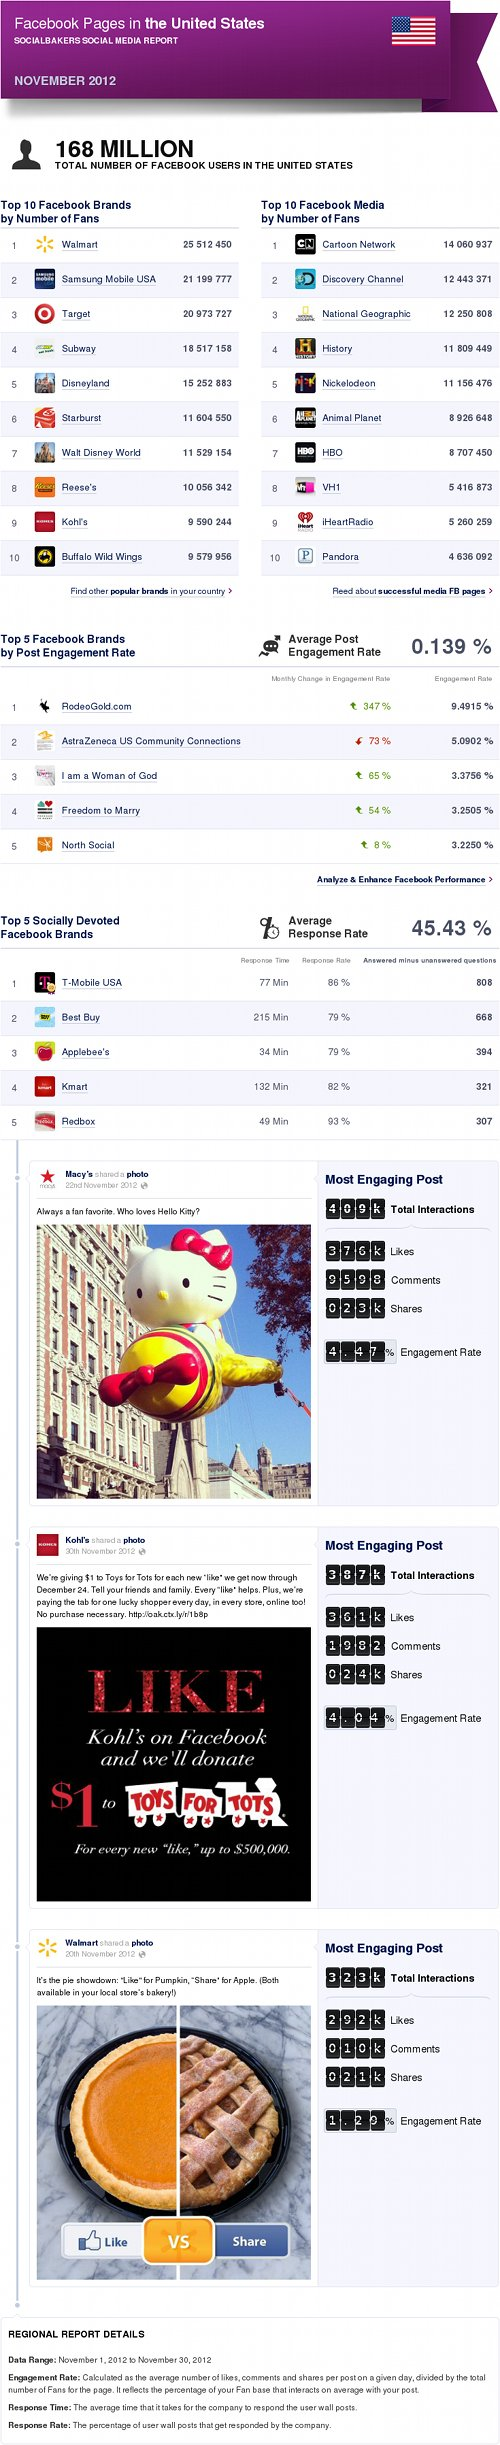 Top Facebook Pages in the US, Nov '12